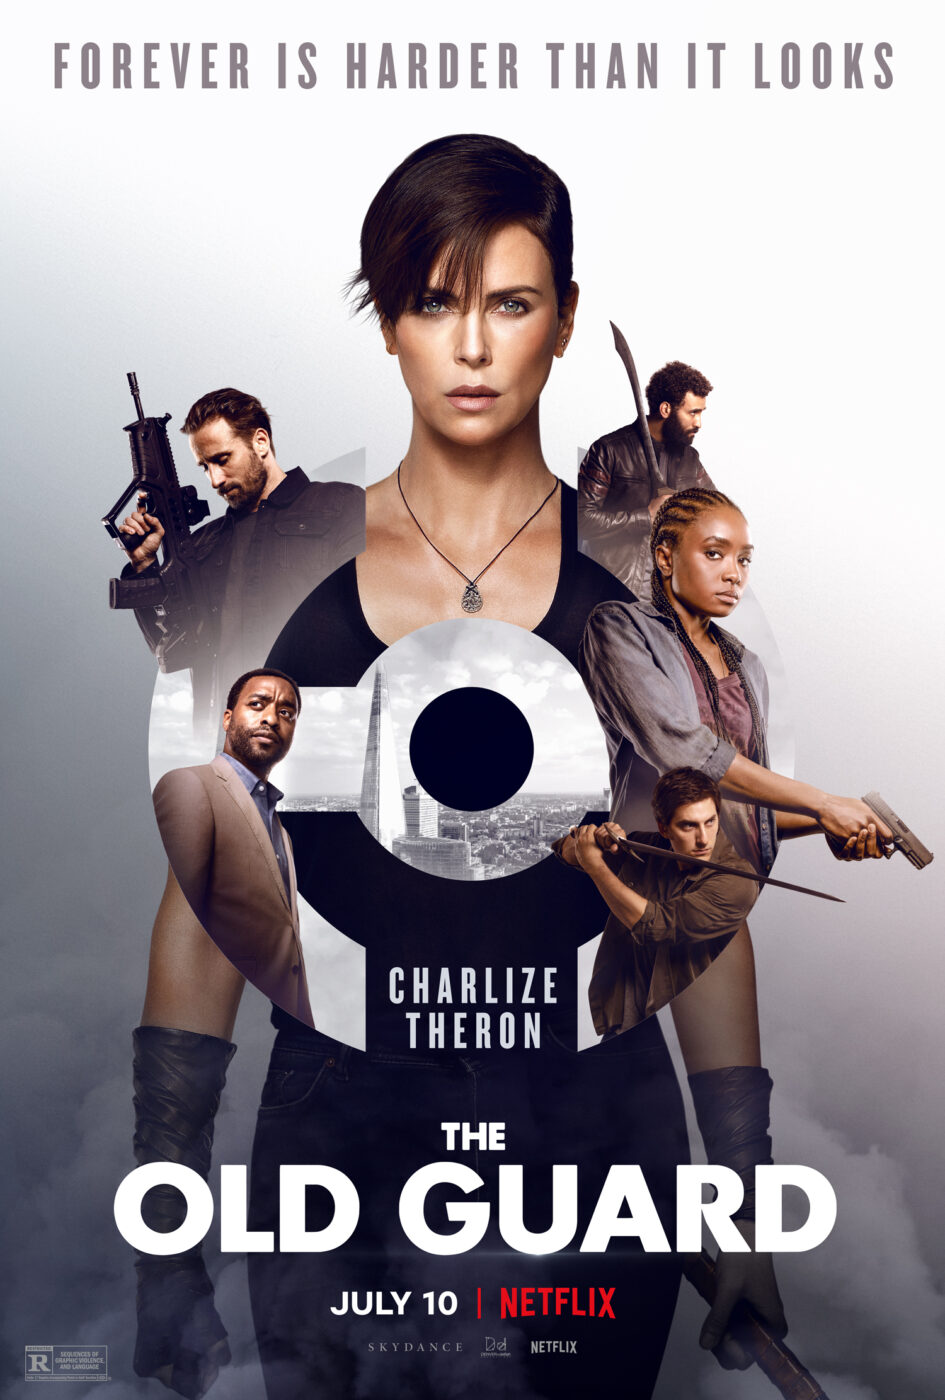 the old guard poster with charlize theron